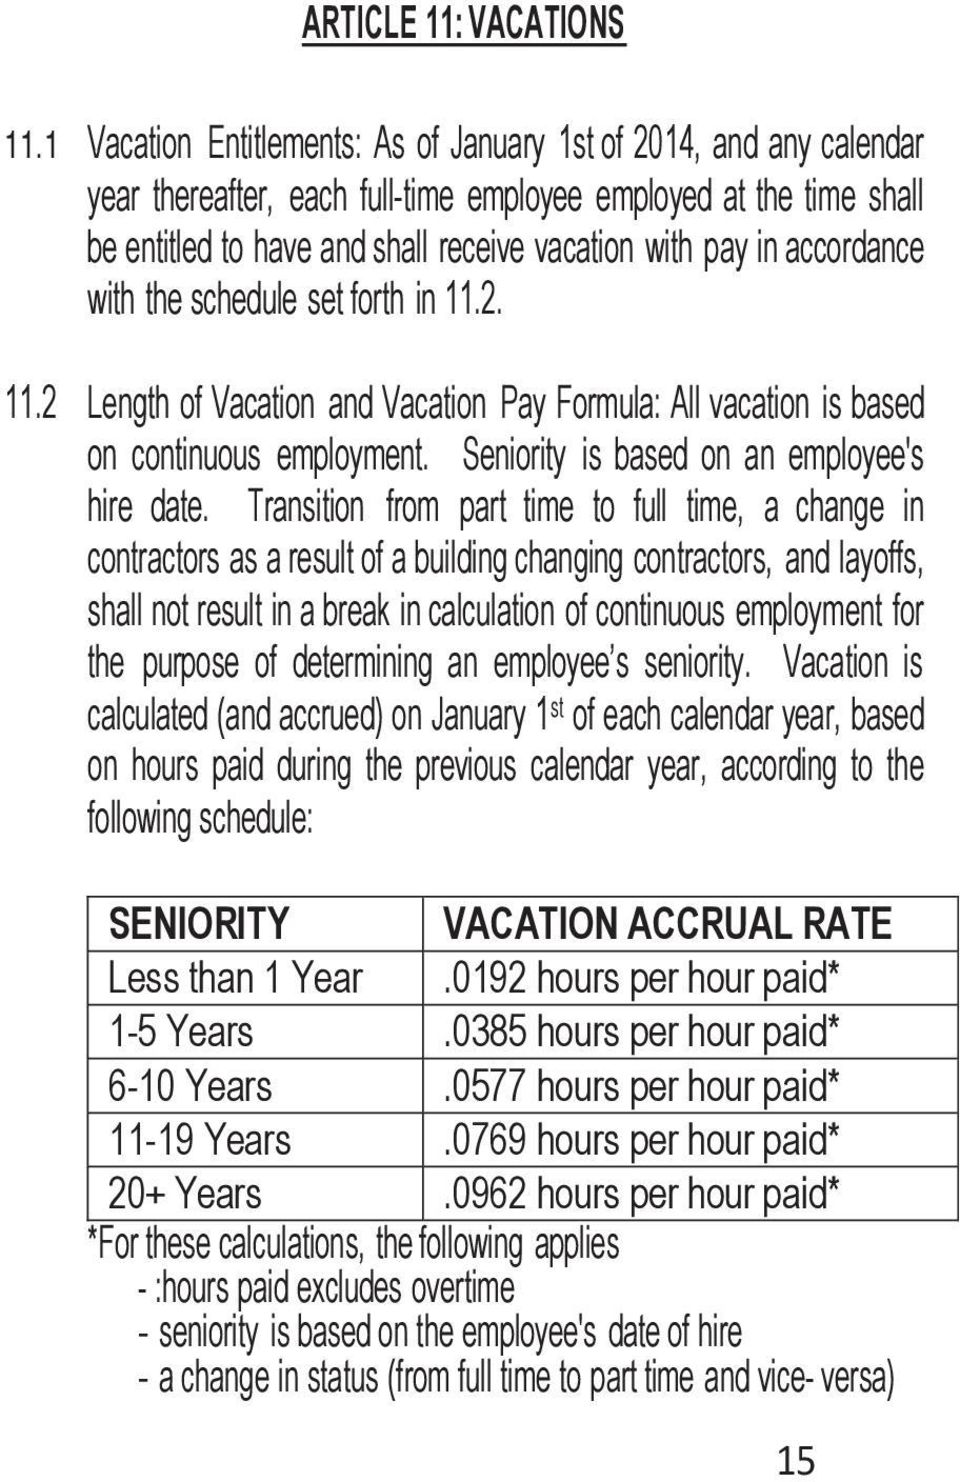 accordance with the schedule set forth in 11.2. 11.2 Length of Vacation and Vacation Pay Formula: All vacation is based on continuous employment. Seniority is based on an employee's hire date.